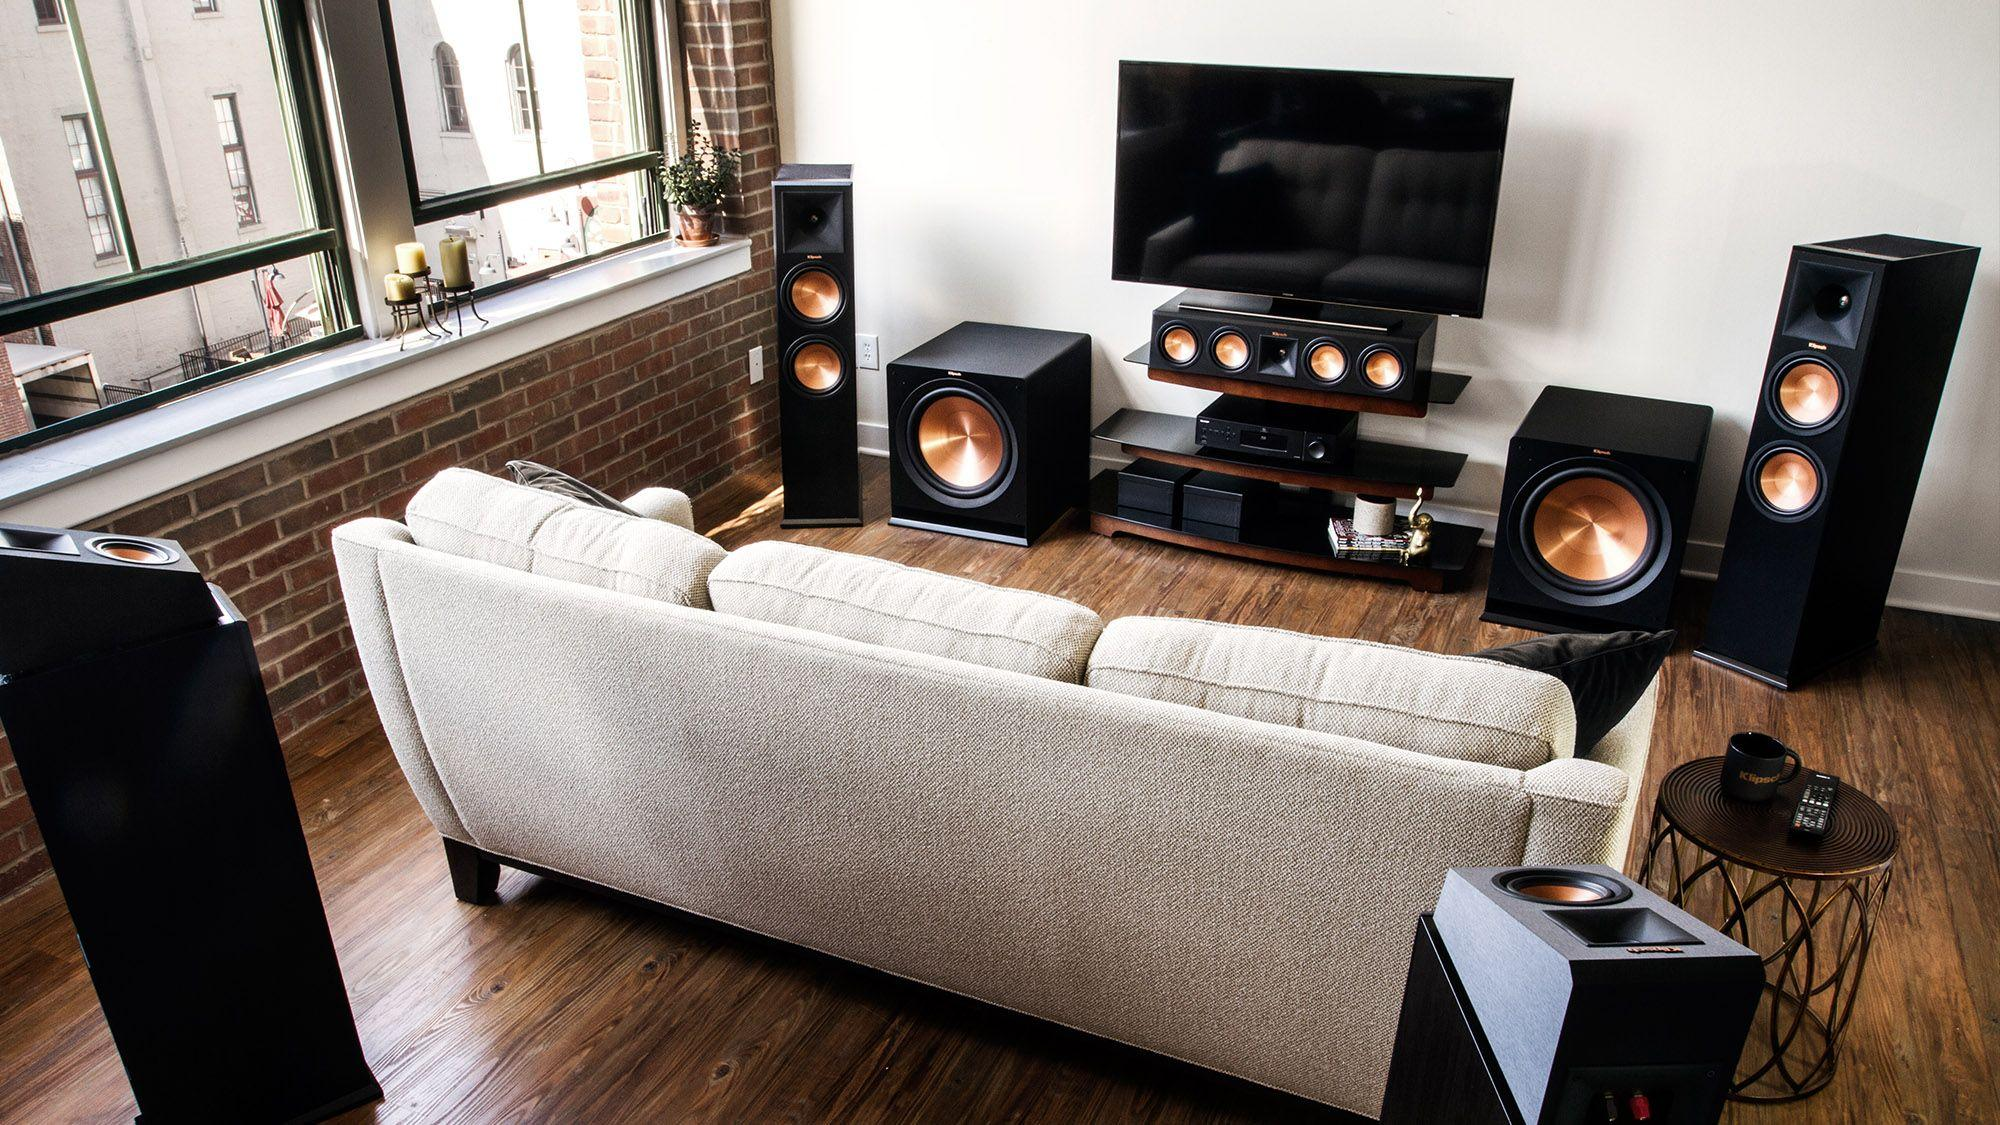 Making The Decision To Put Together A Surround System Is Great Choice We Certainly Think So However Picking Right Speakers Only Part Of